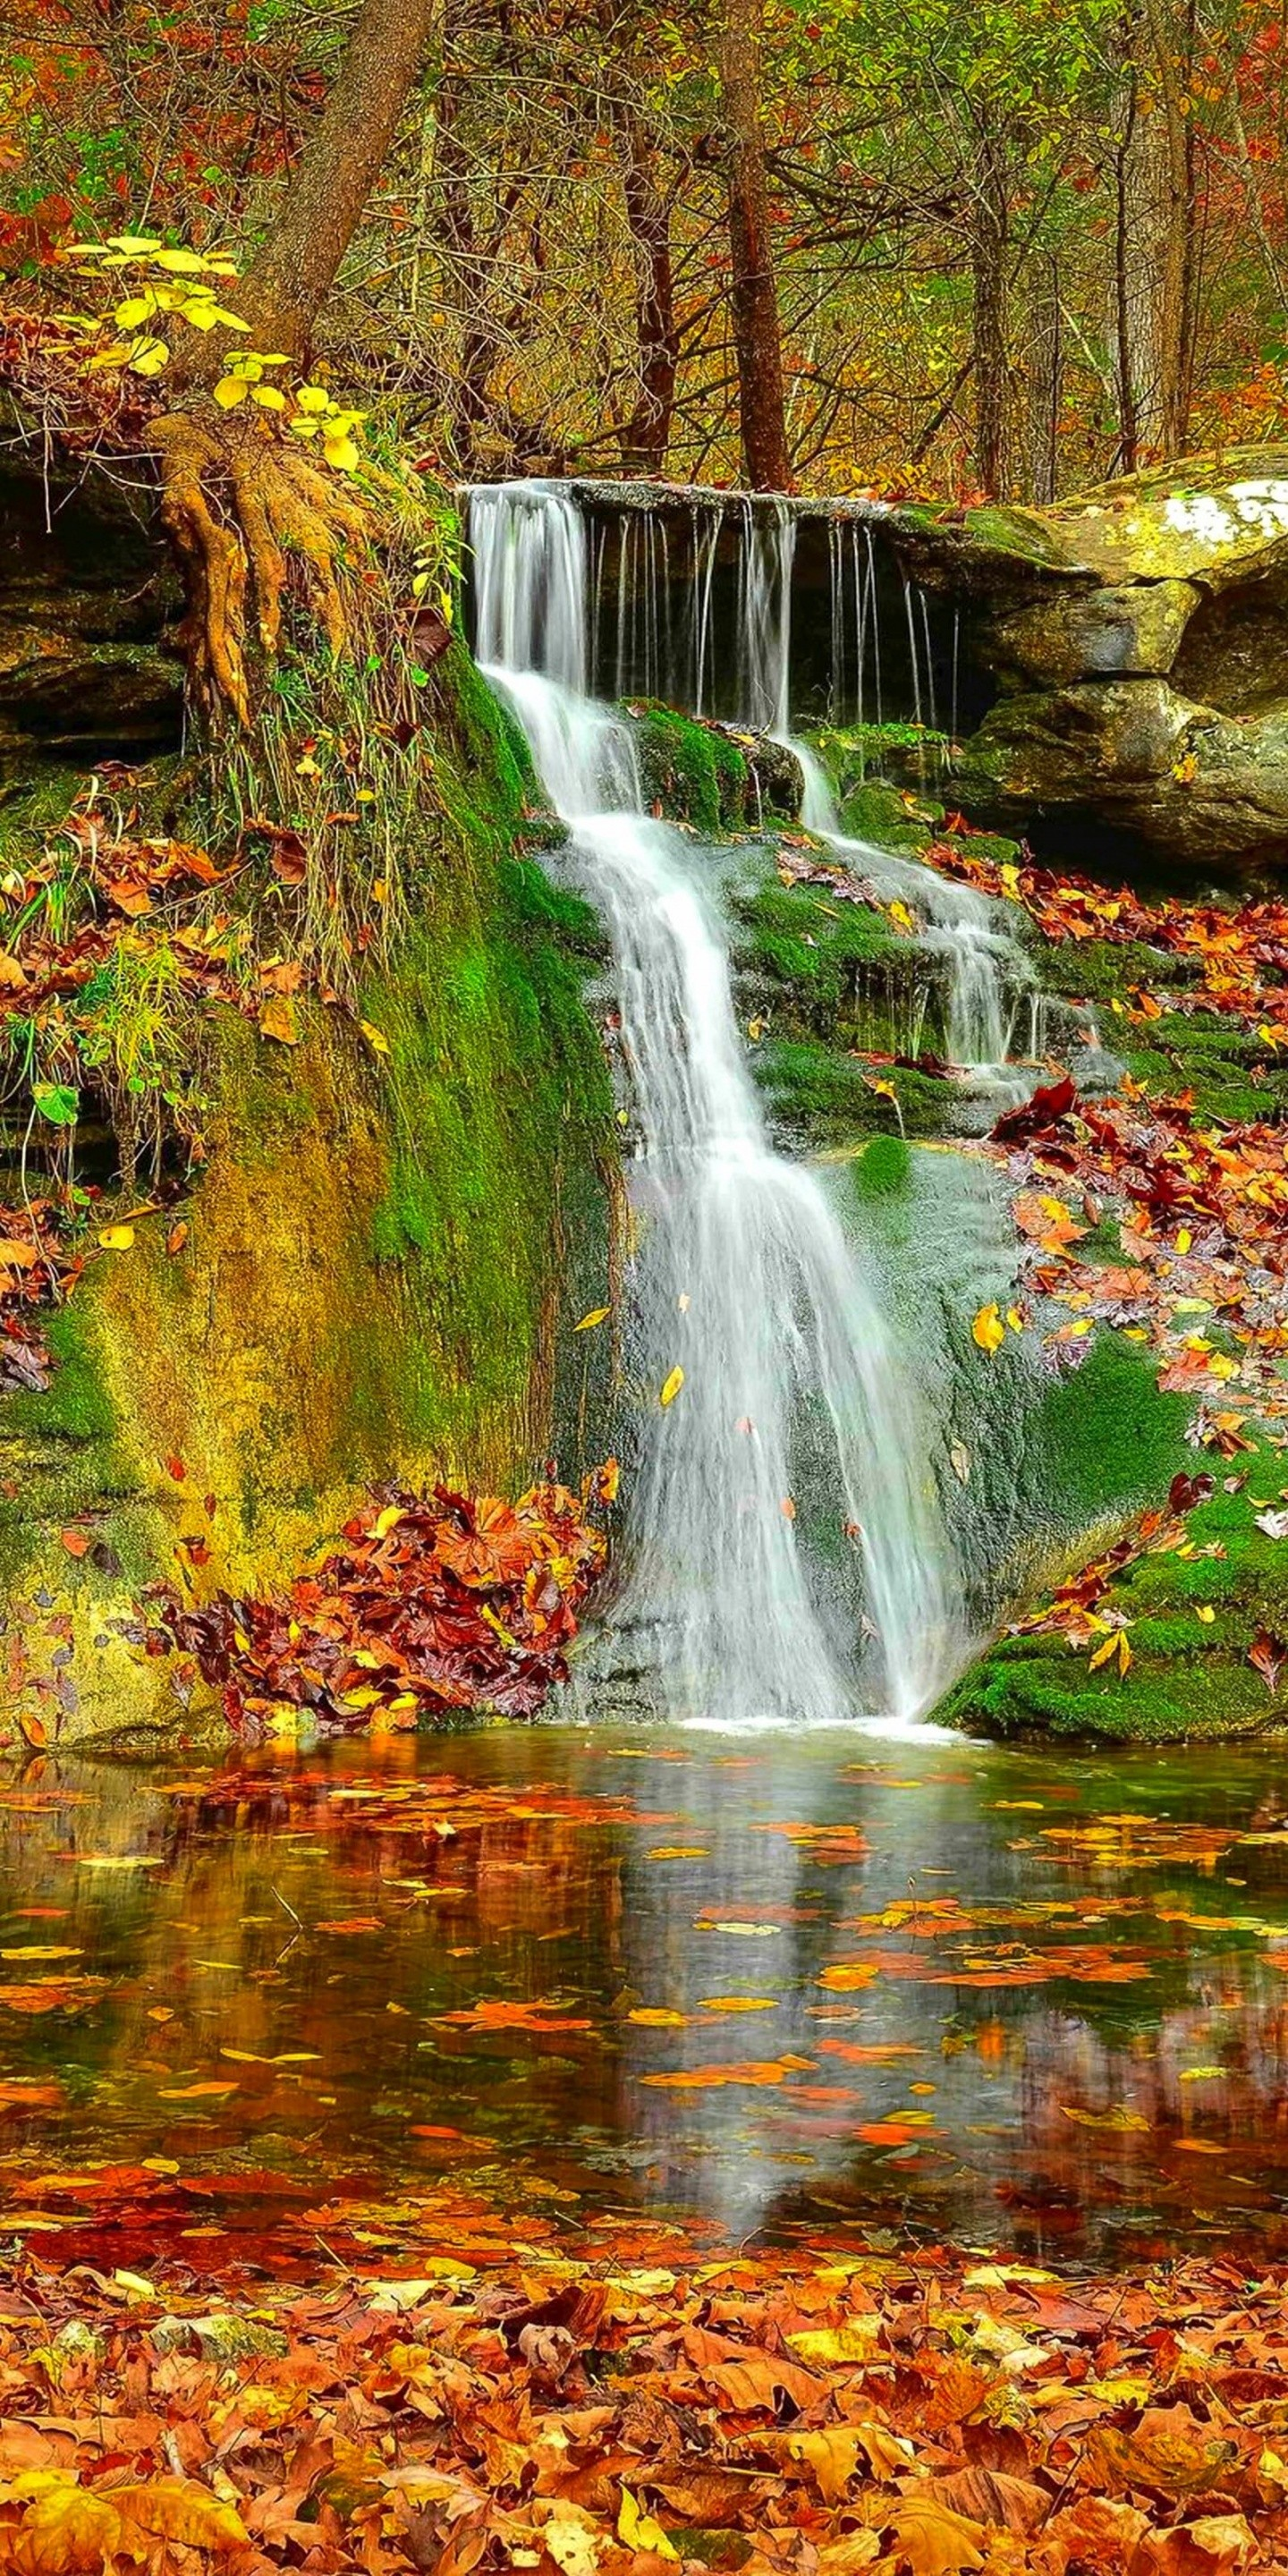 Wallpaper 3d Windows 7 1366x768 Waterfall Autumn Lovely Stream 1440x2880